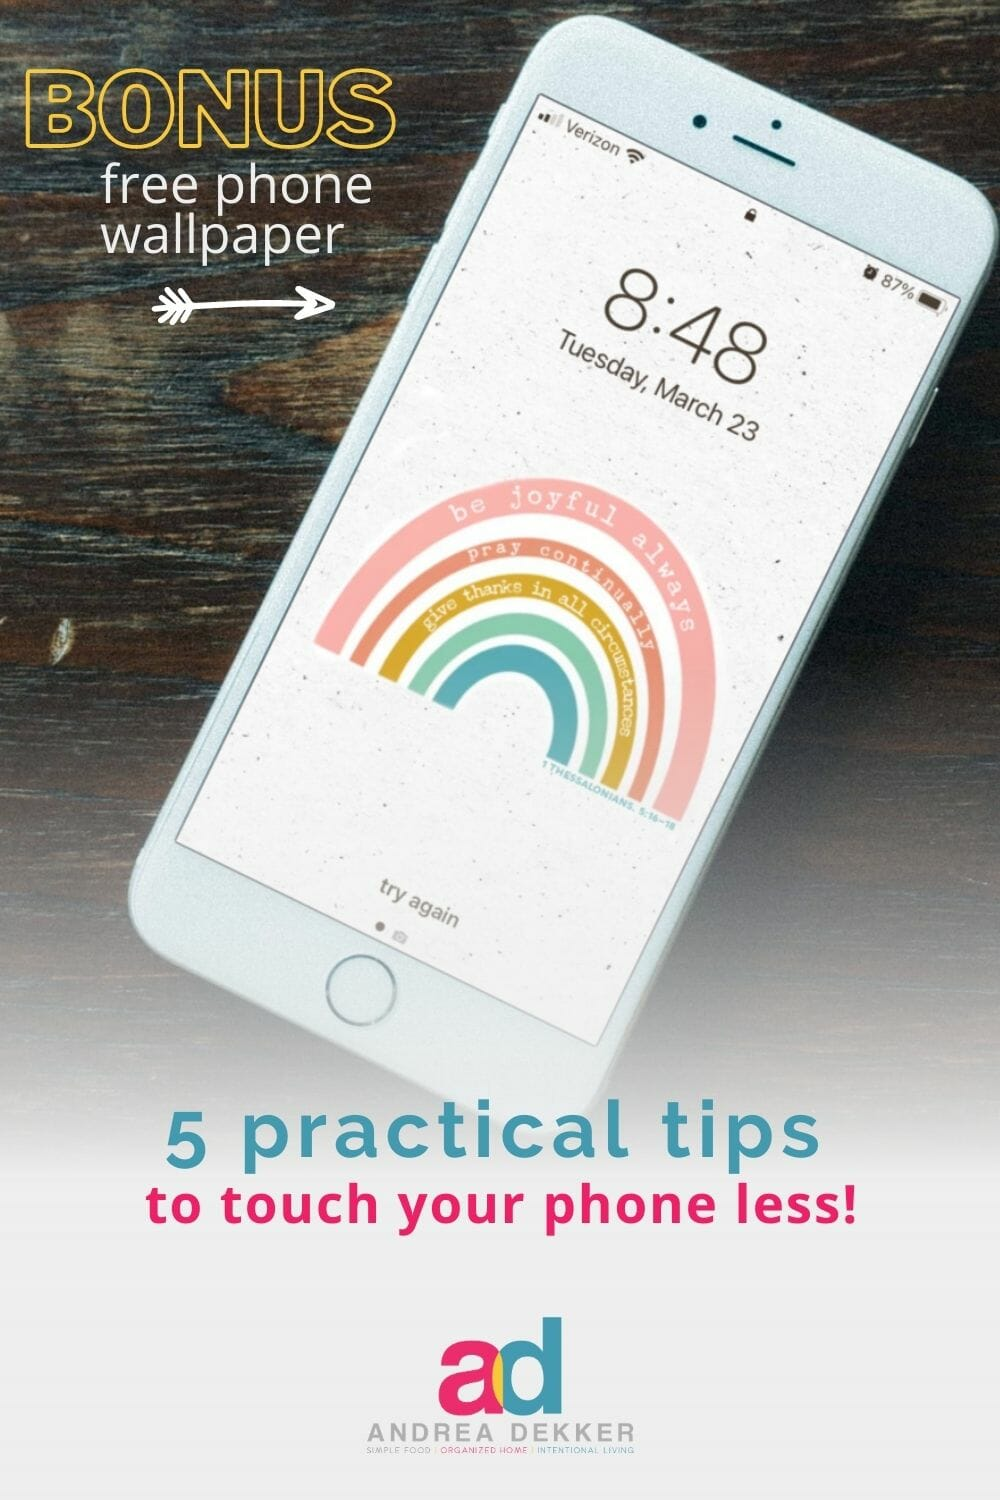 Gain freedom from your phone with these 5 tips that will train your brain and your body to touch your phone less often. via @andreadekker